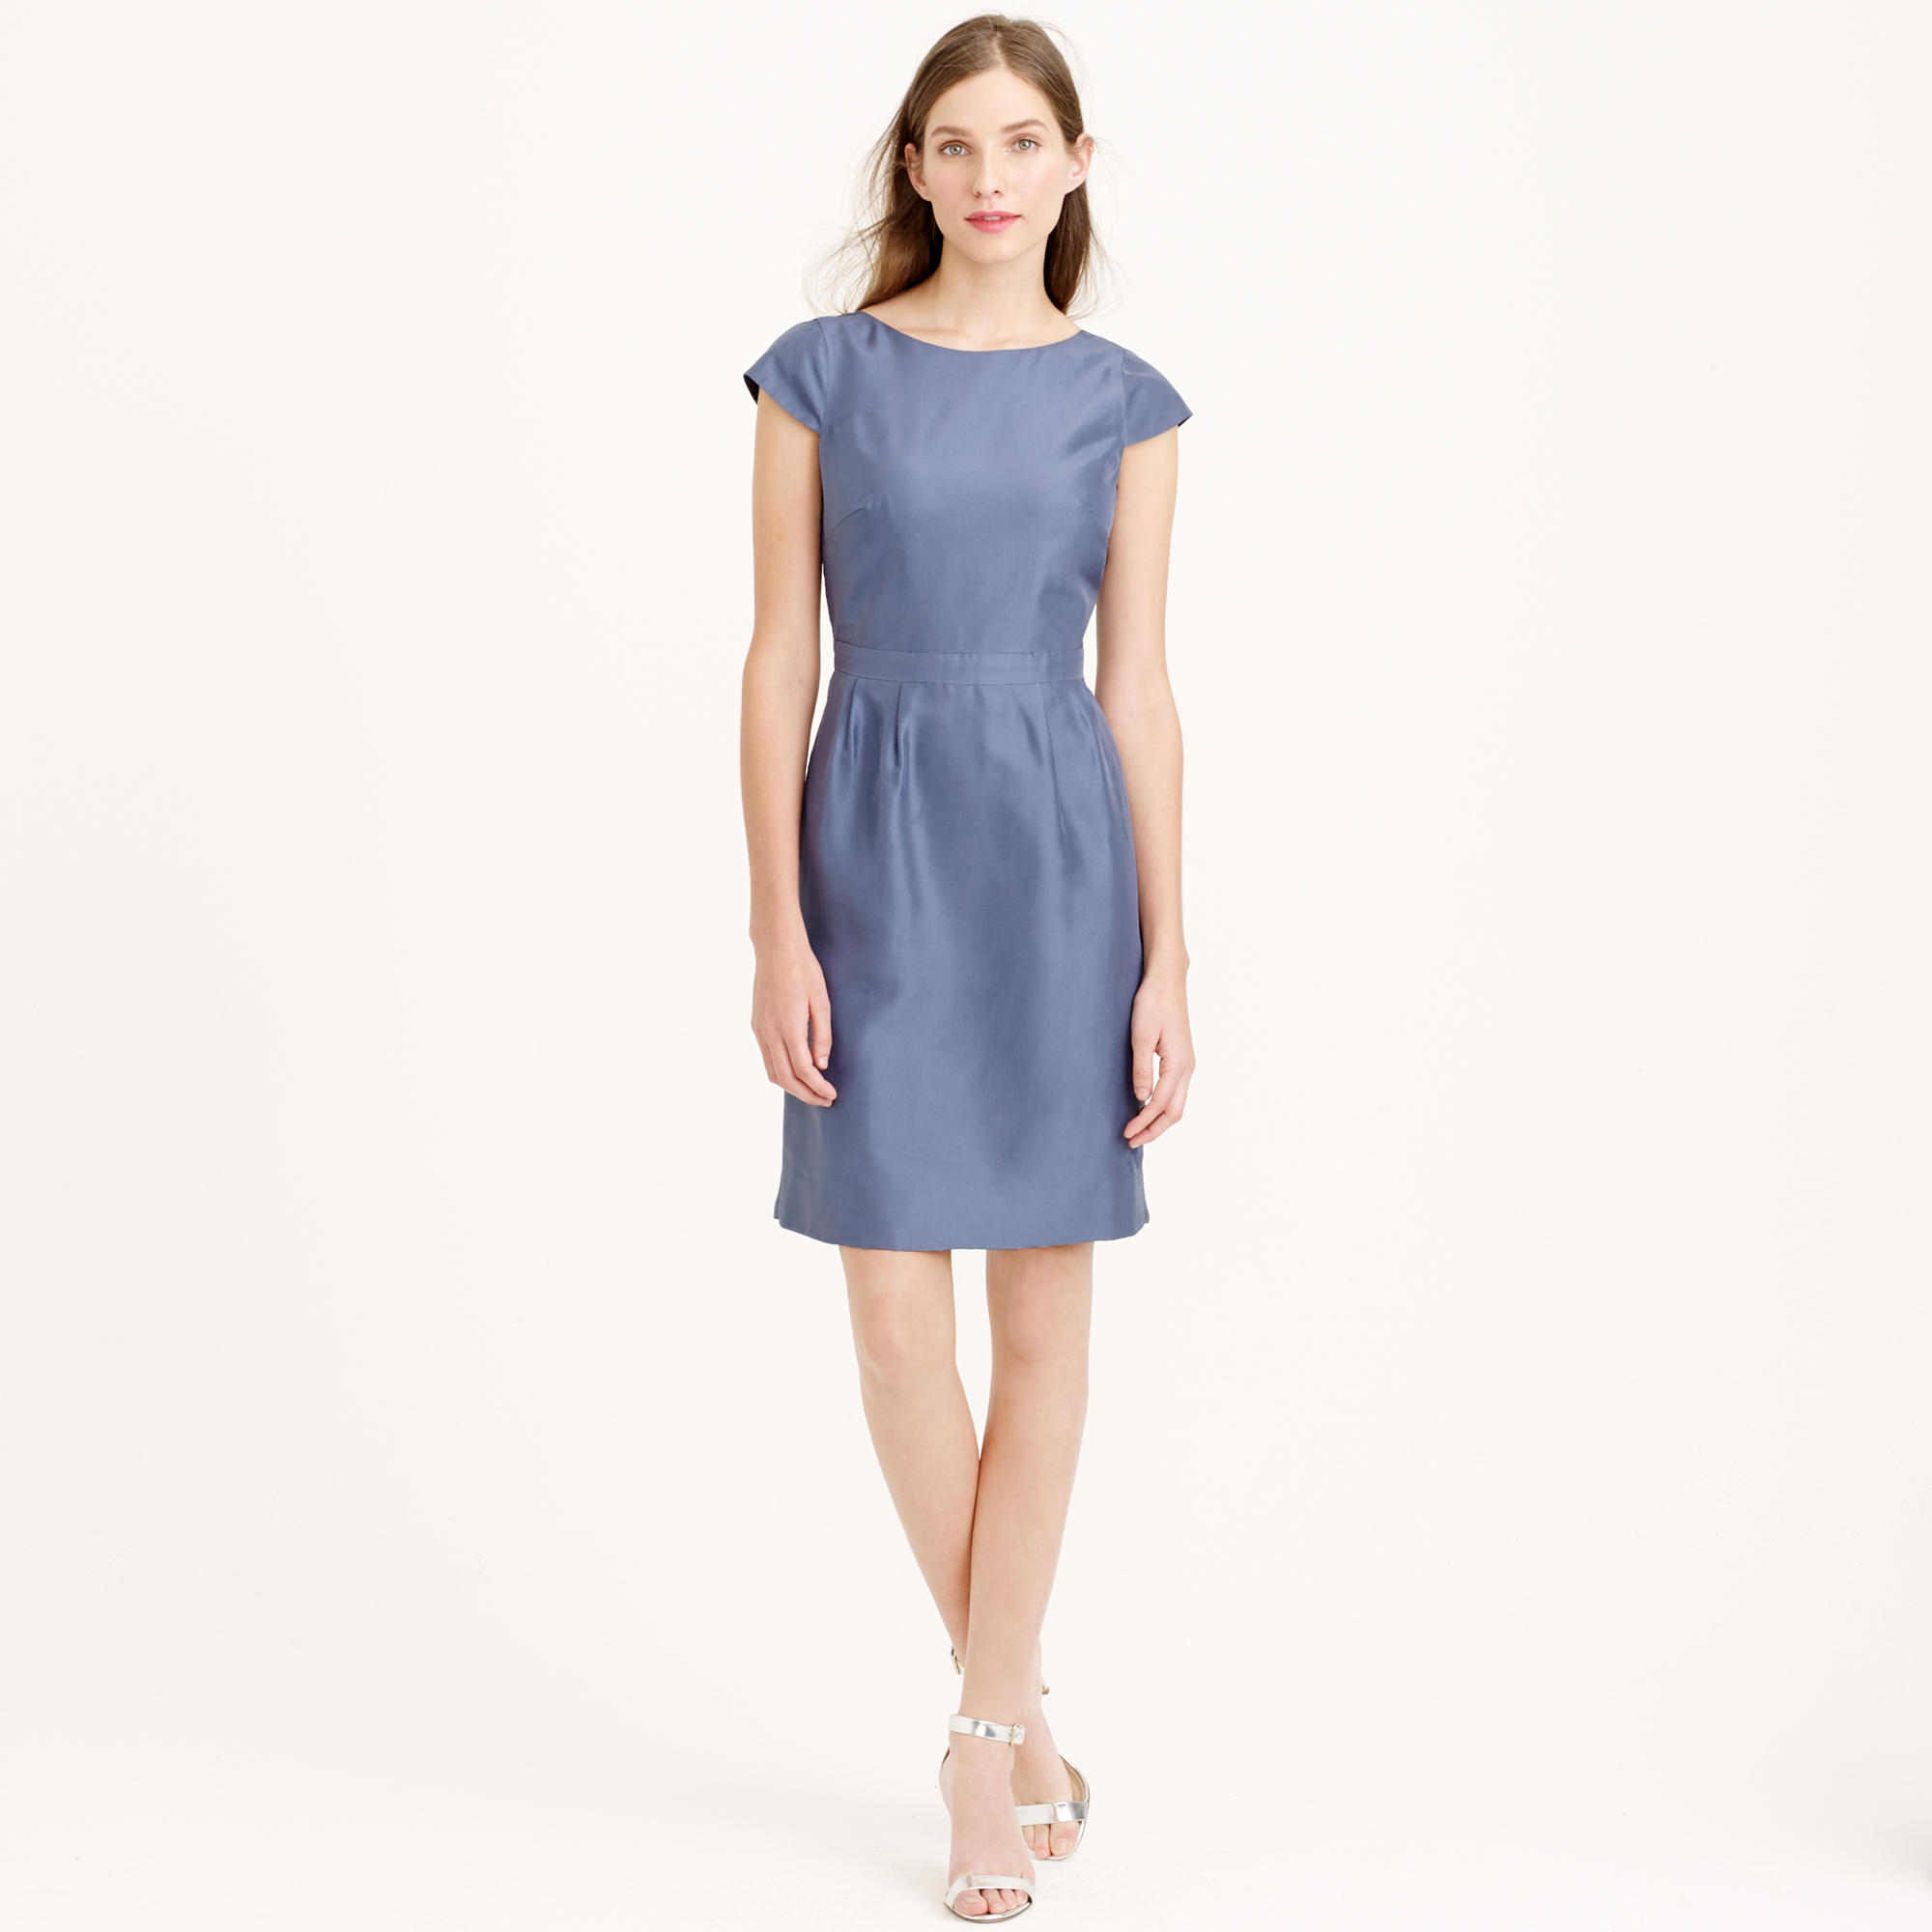 Lyst - J.Crew Petite Tessa Dress In Slub Silk in Blue d7f737a05